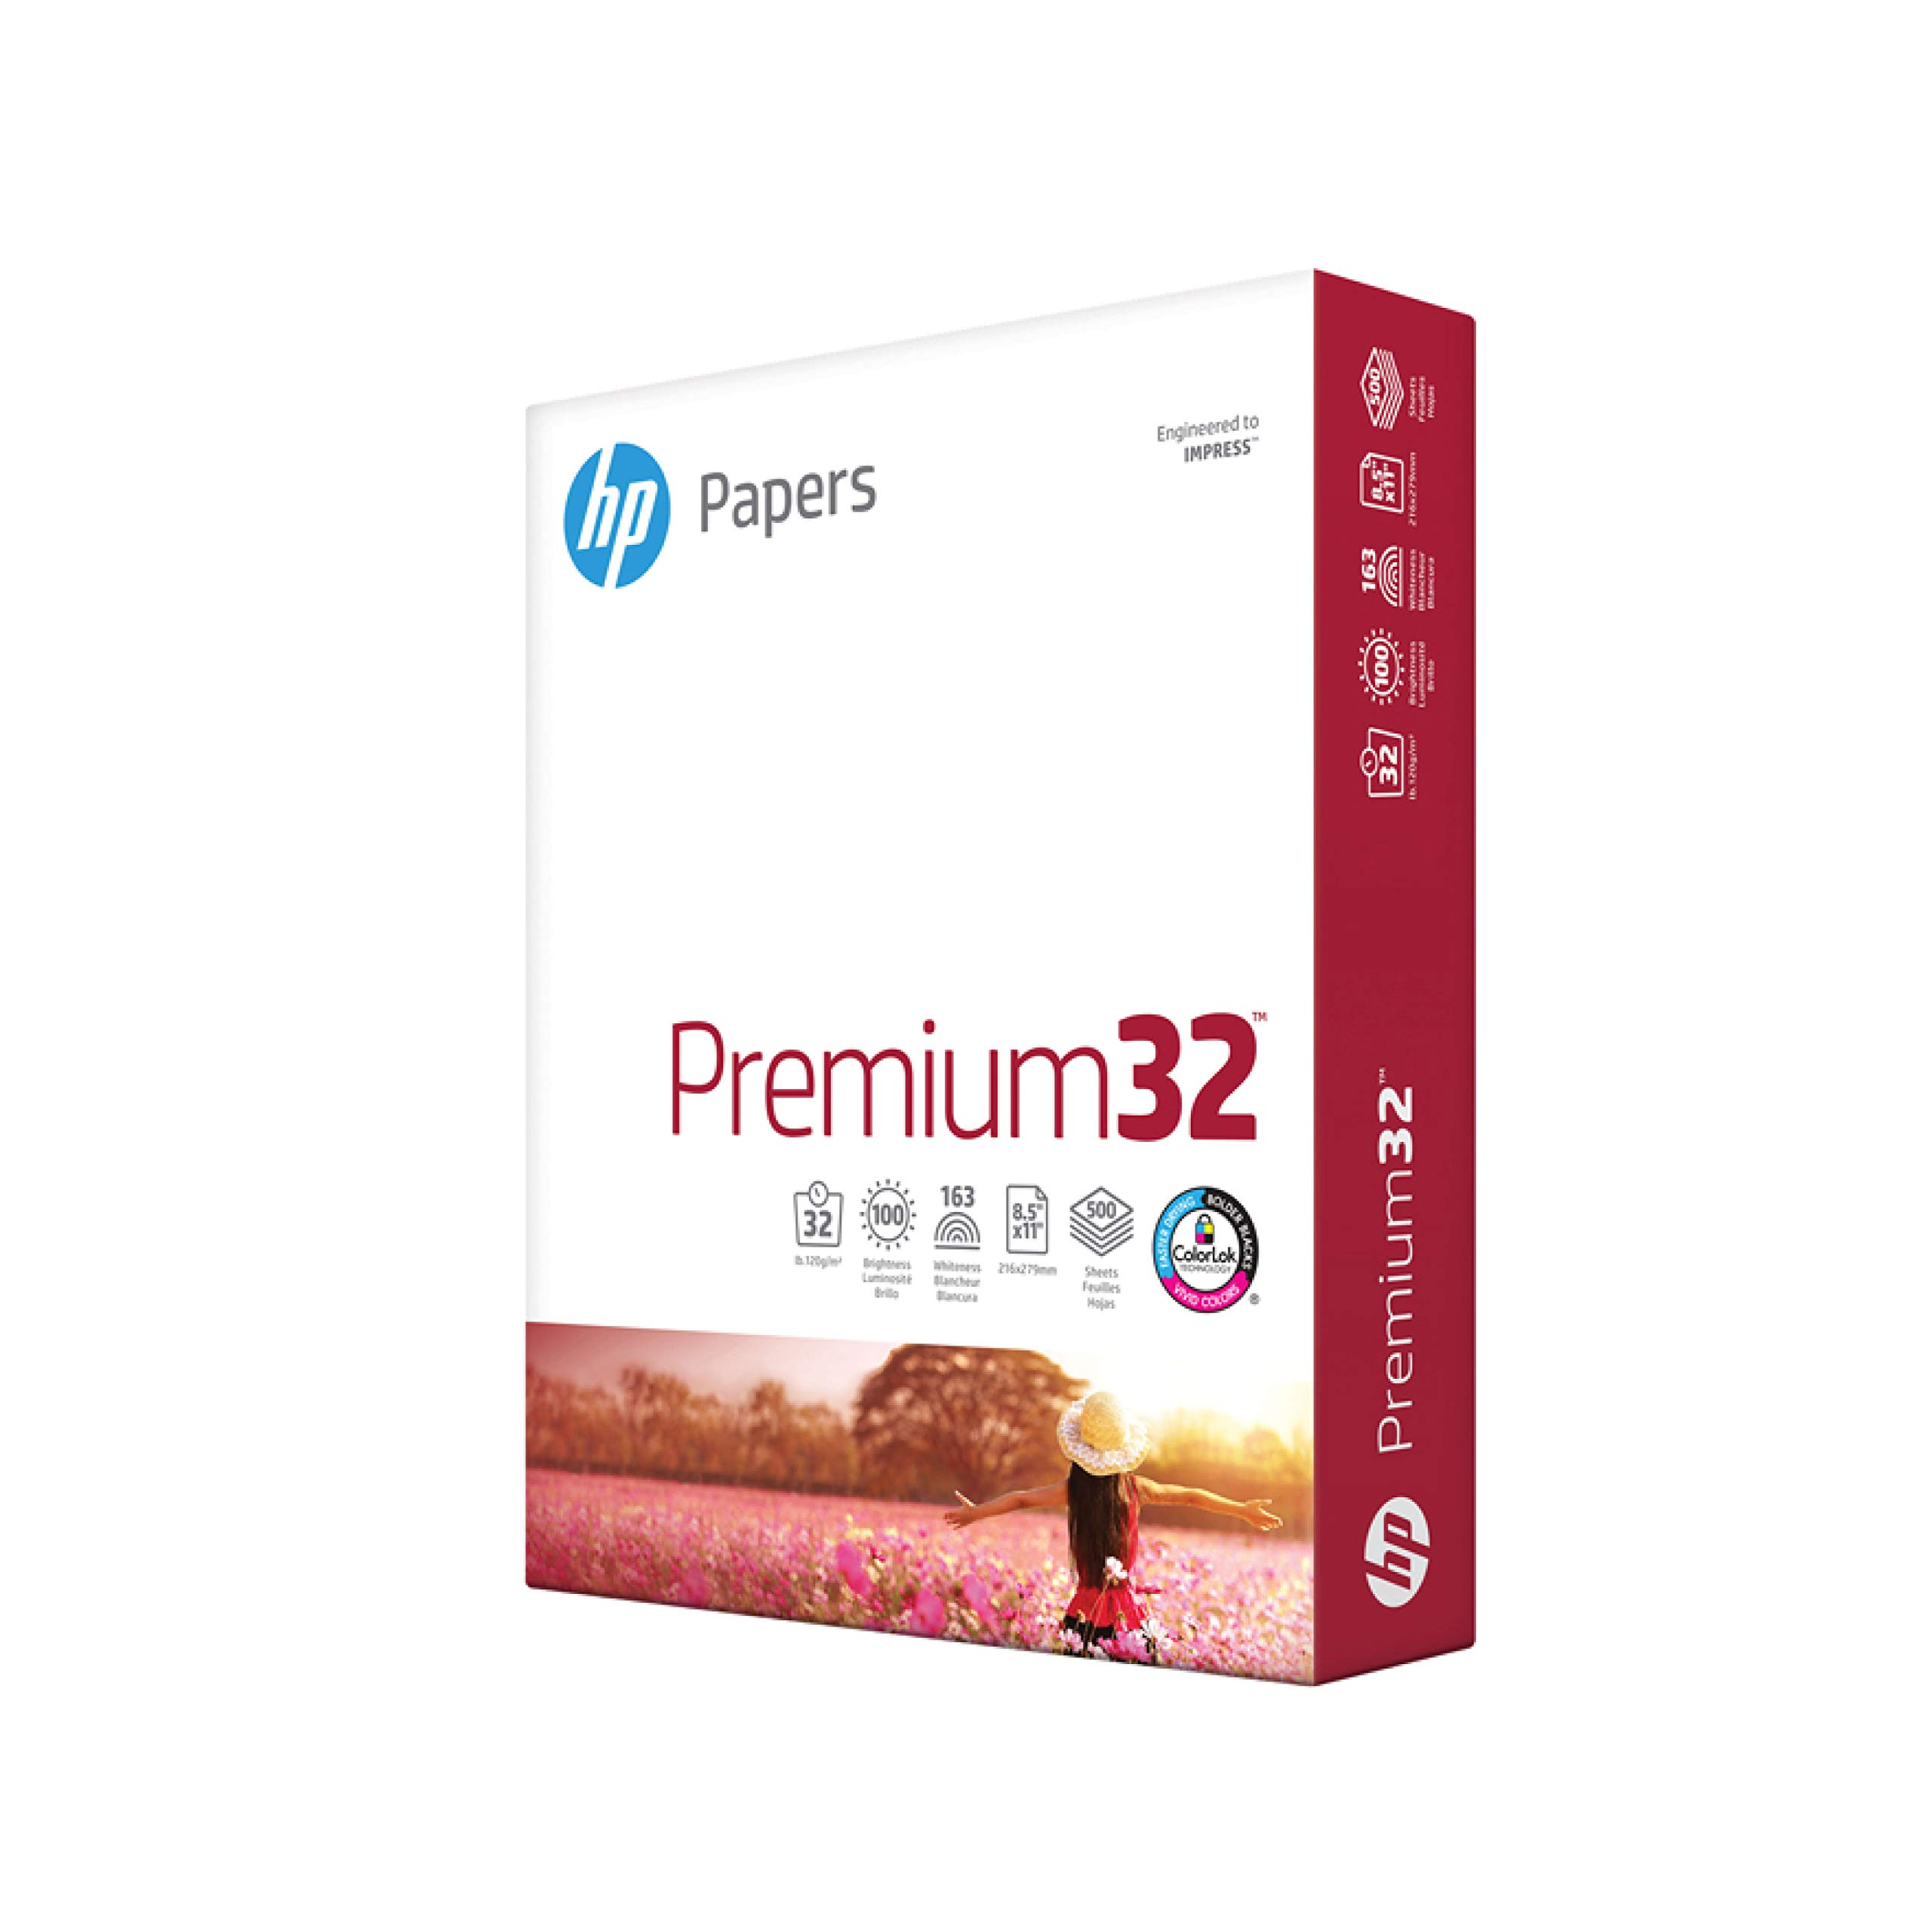 HP Papers Printer Paper 8.5x11 Premium 32 Lb 1 Ream 500 Sheets 100 Bright Made in USA FSC Certified Copy Paper Compatible 113100R, White